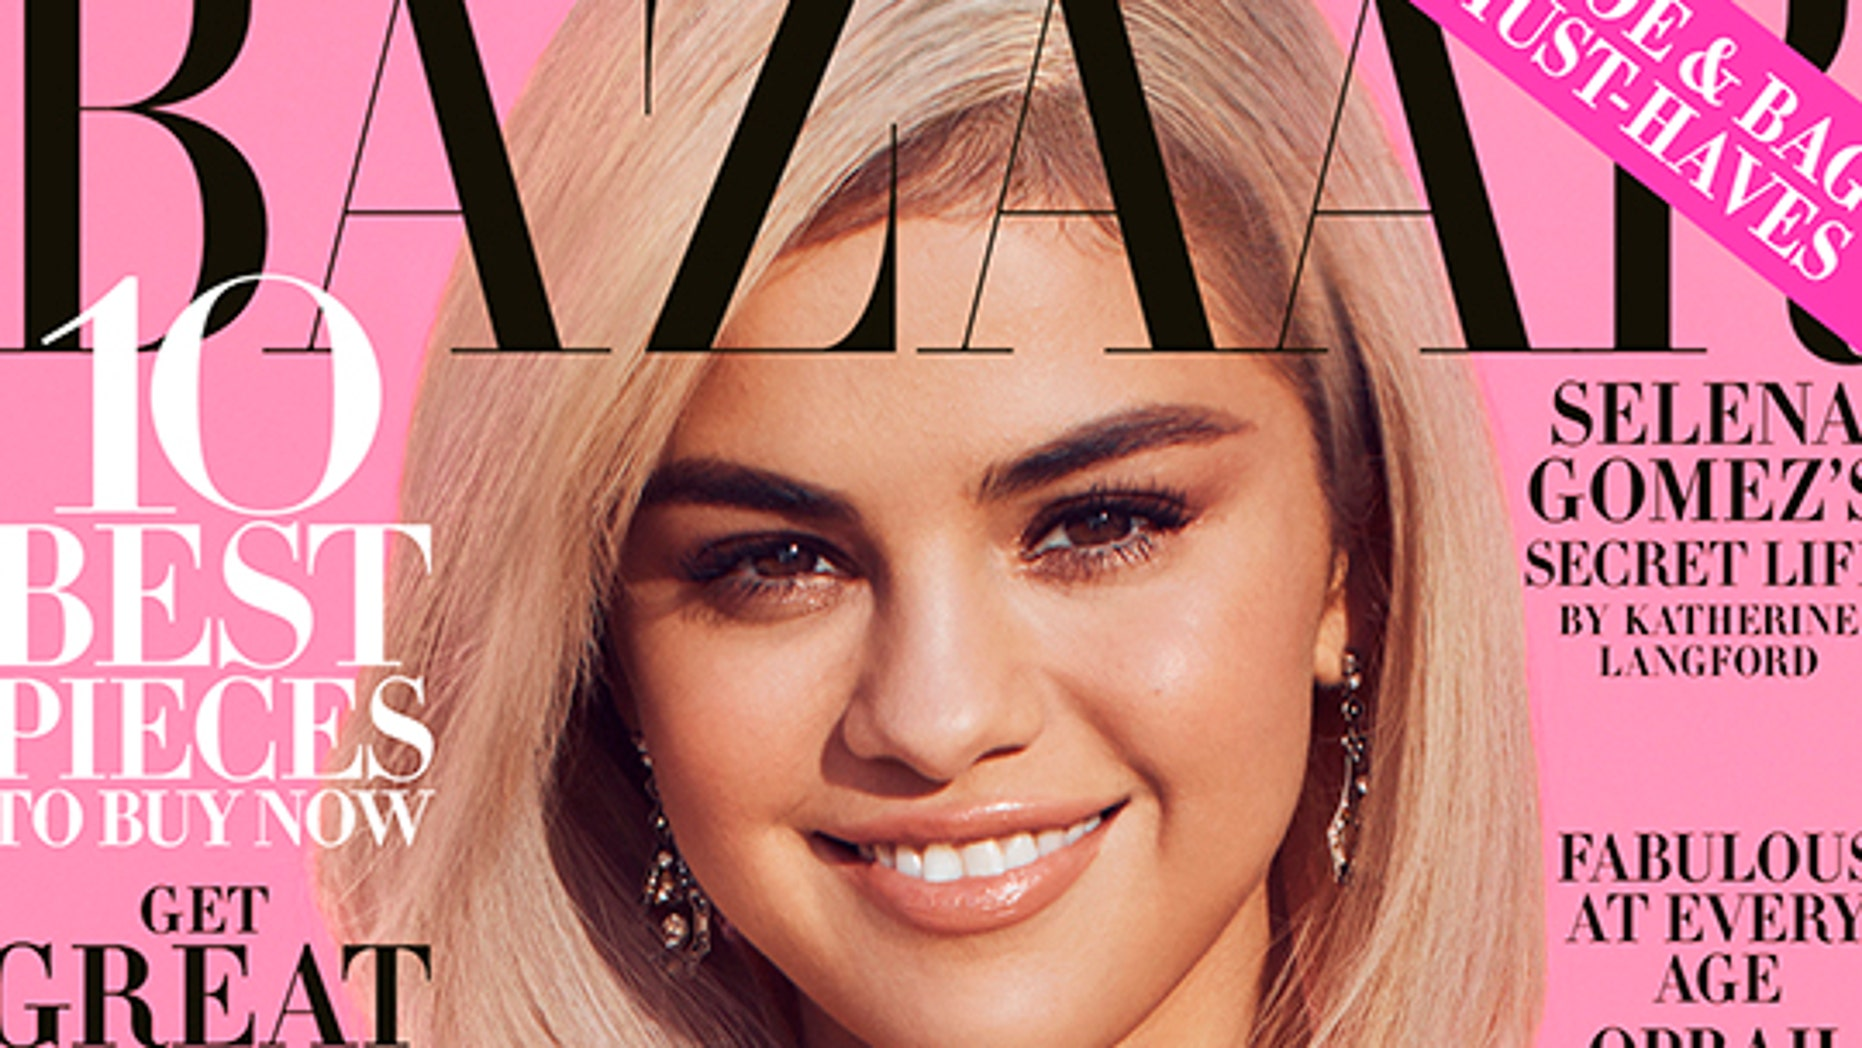 Selena Gomez graces the cover of Harper's Bazaar.